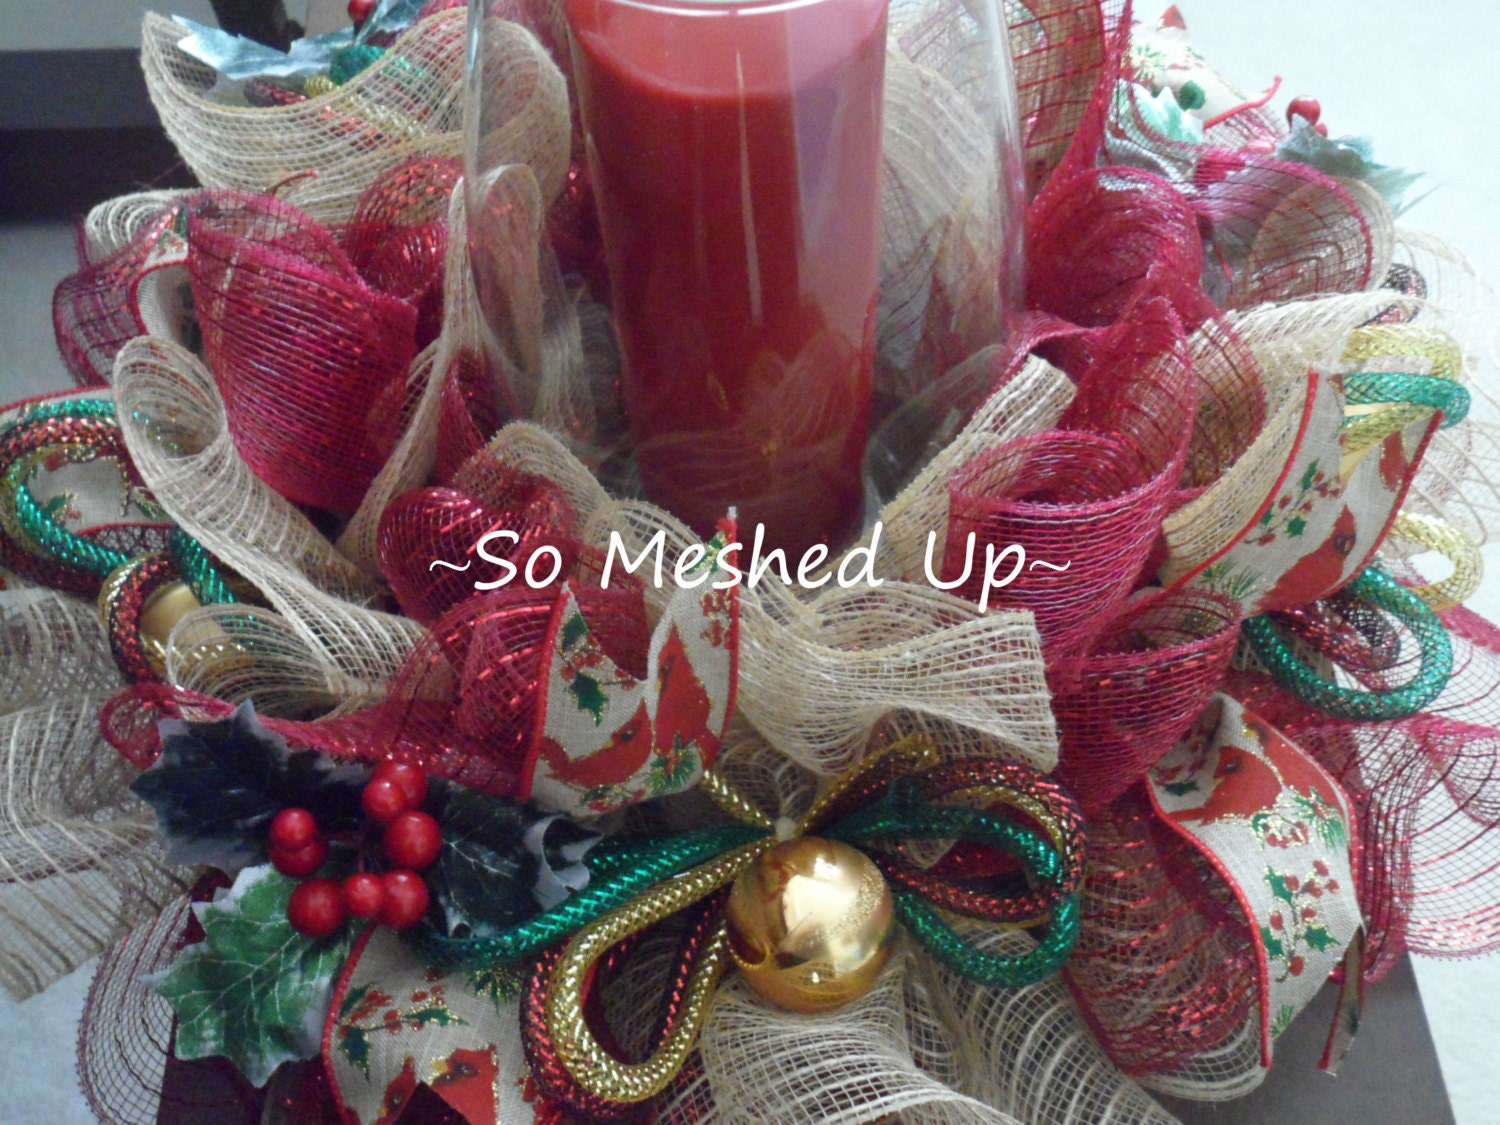 Deco mesh burlap look christmas centerpiece by someshedup